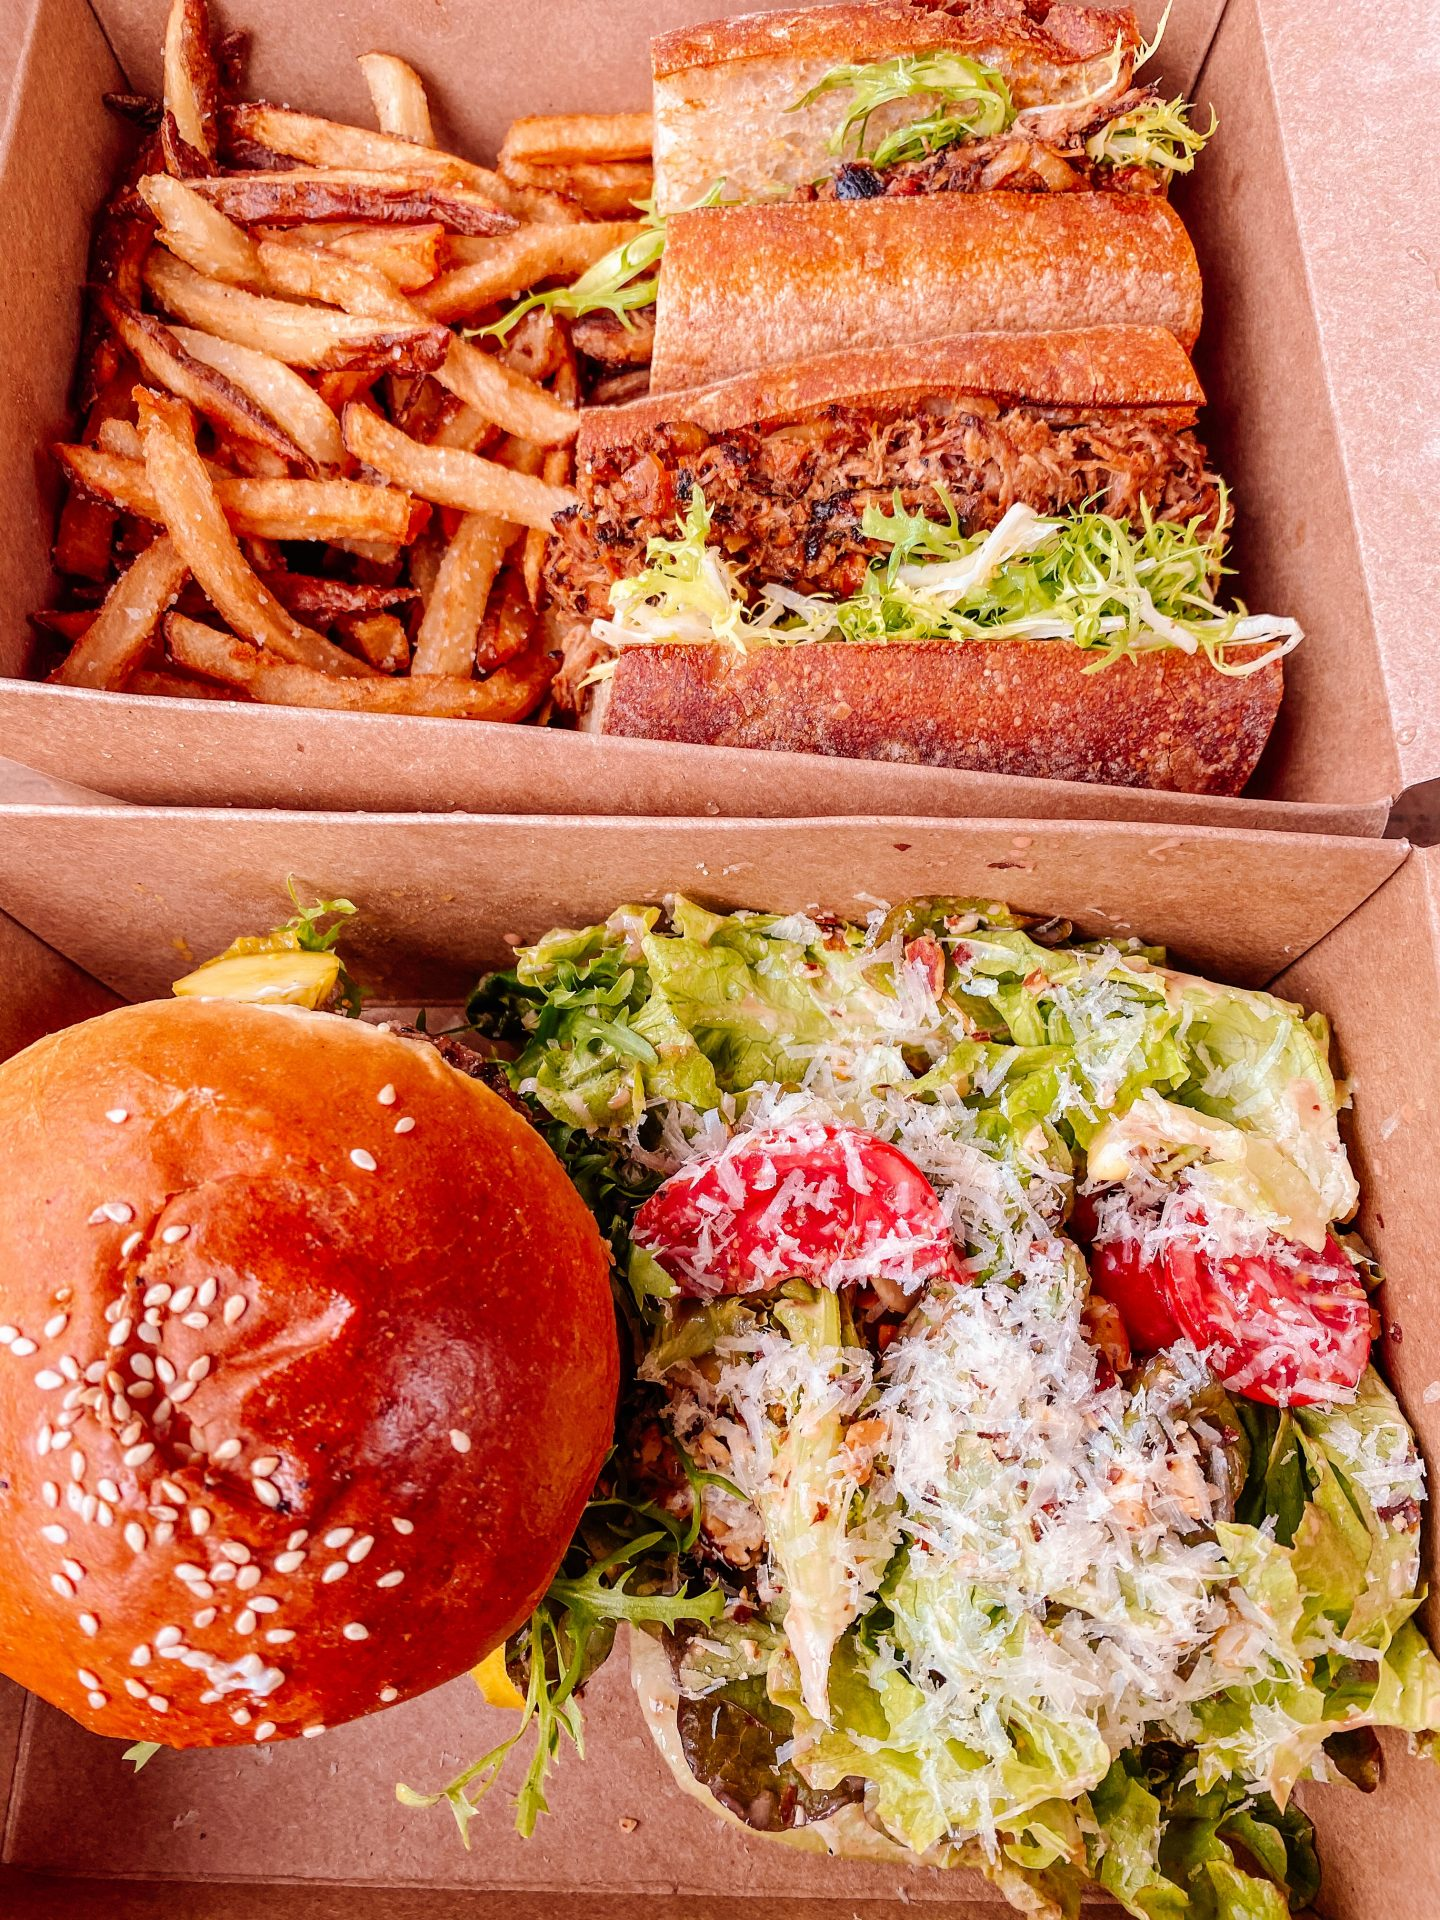 Sandwich boxes at burial brewing company located in asheville north carolina